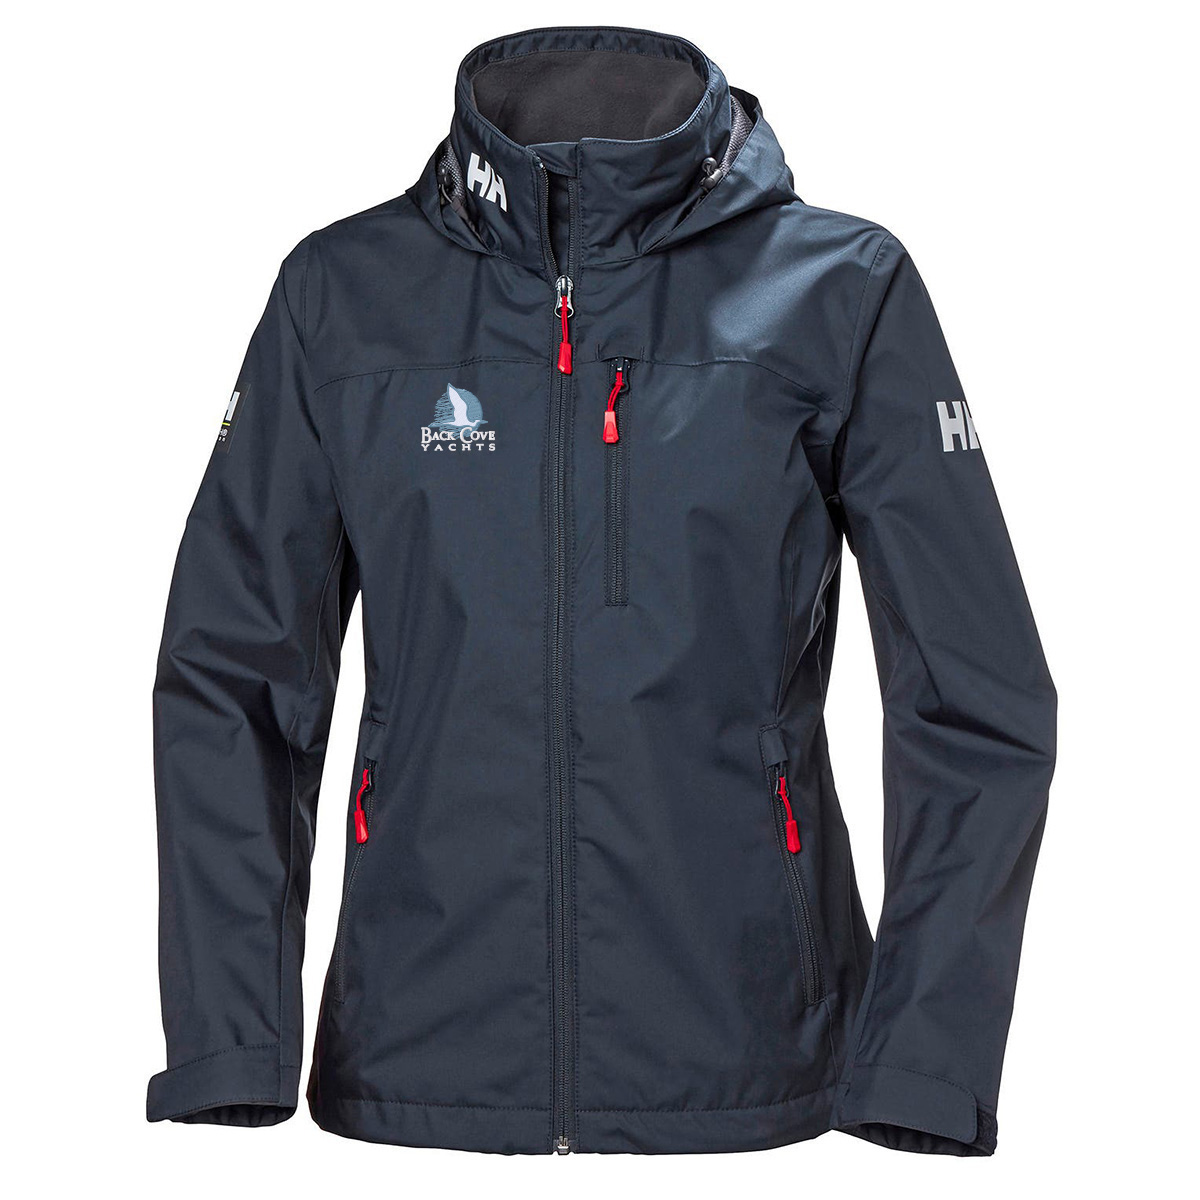 Back Cove Yachts - Helly Hansen W's Hooded Crew Jacket